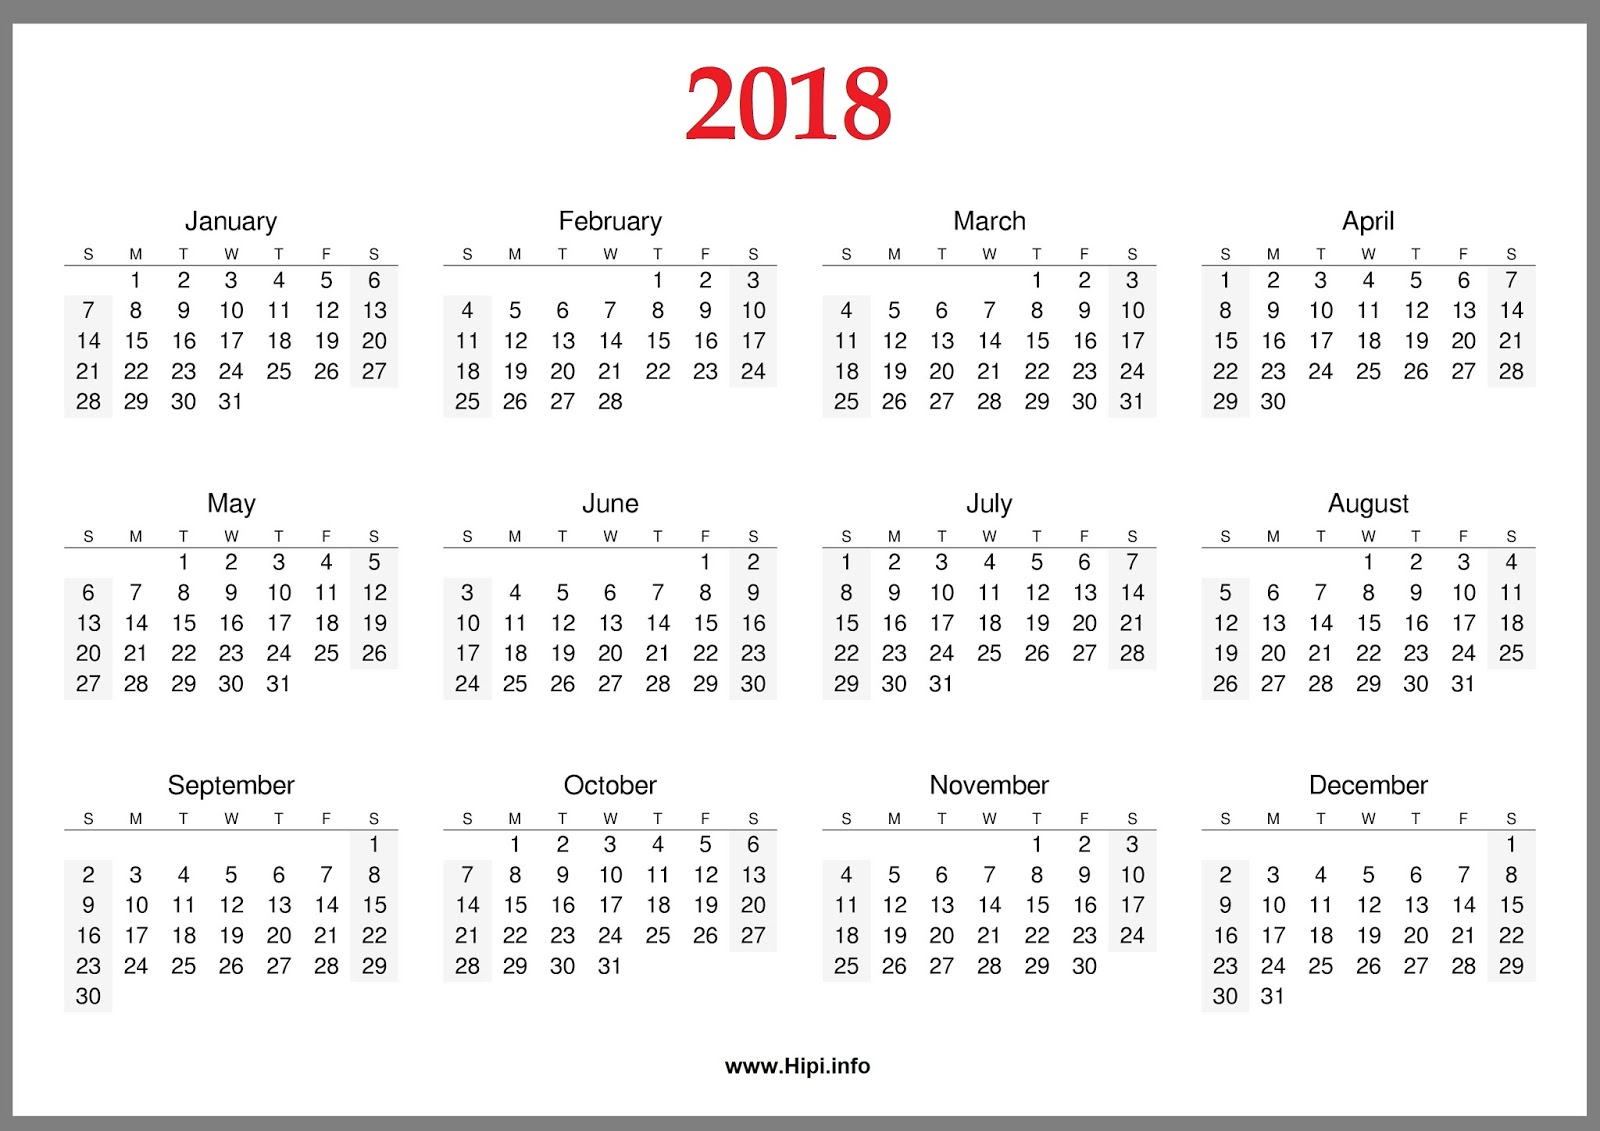 2018 Calendar Printable For Free Download India USA UK